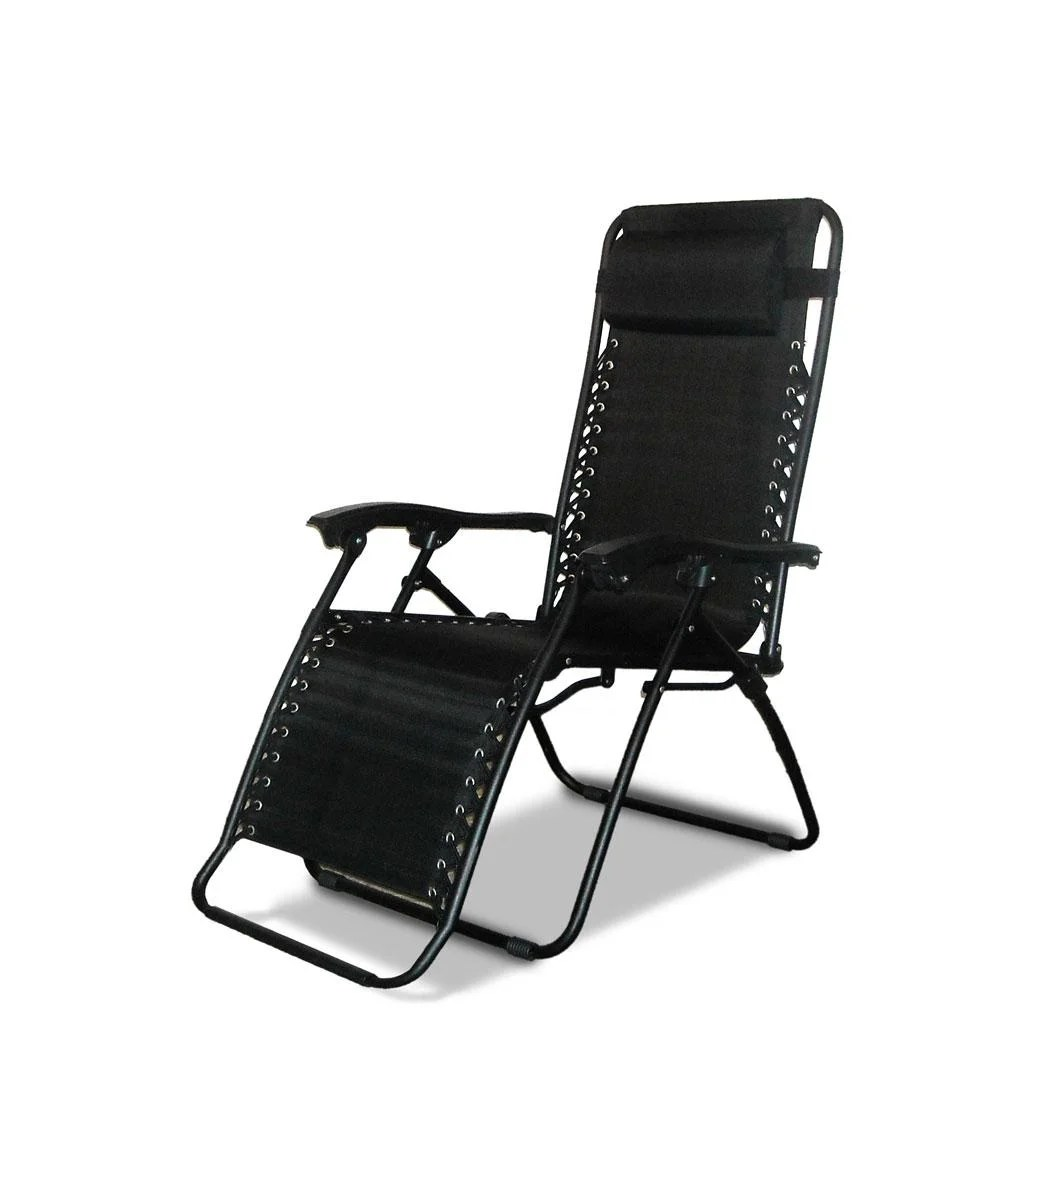 Indoor Zero Gravity Chair Shop Caravan Canopy Black Zero Gravity Chair Free